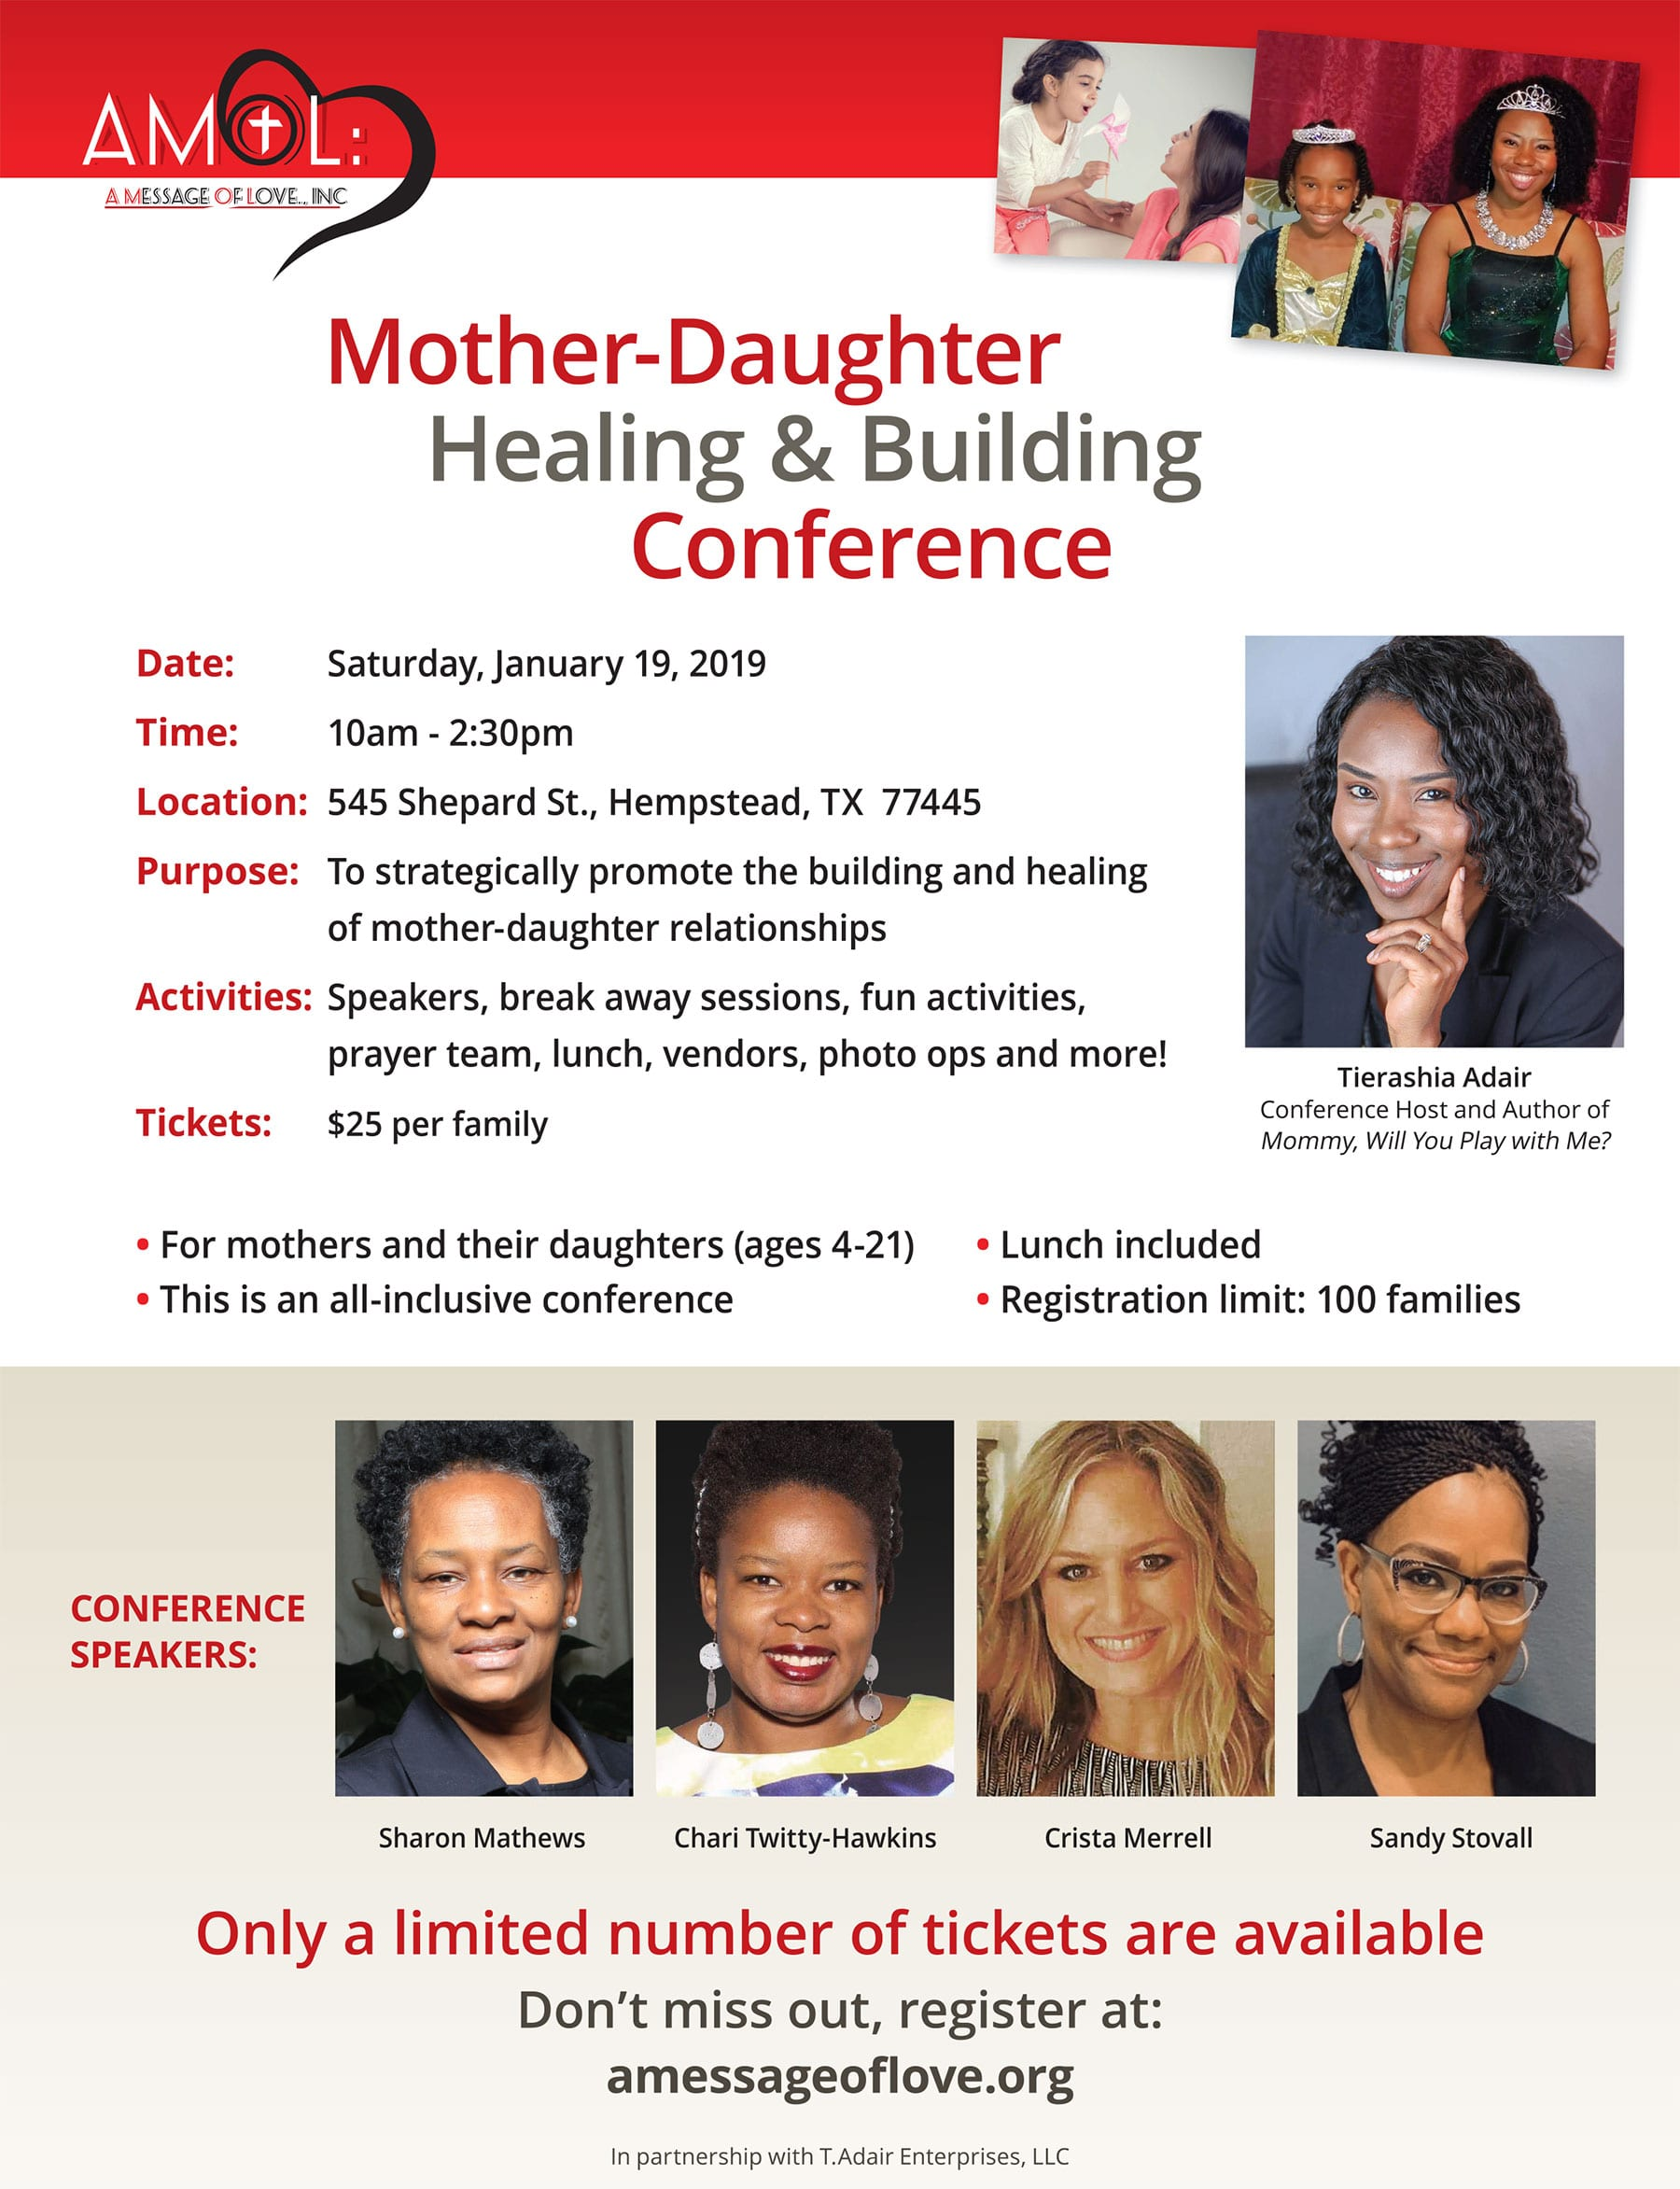 Mother-Daughter Healing & Building Conference